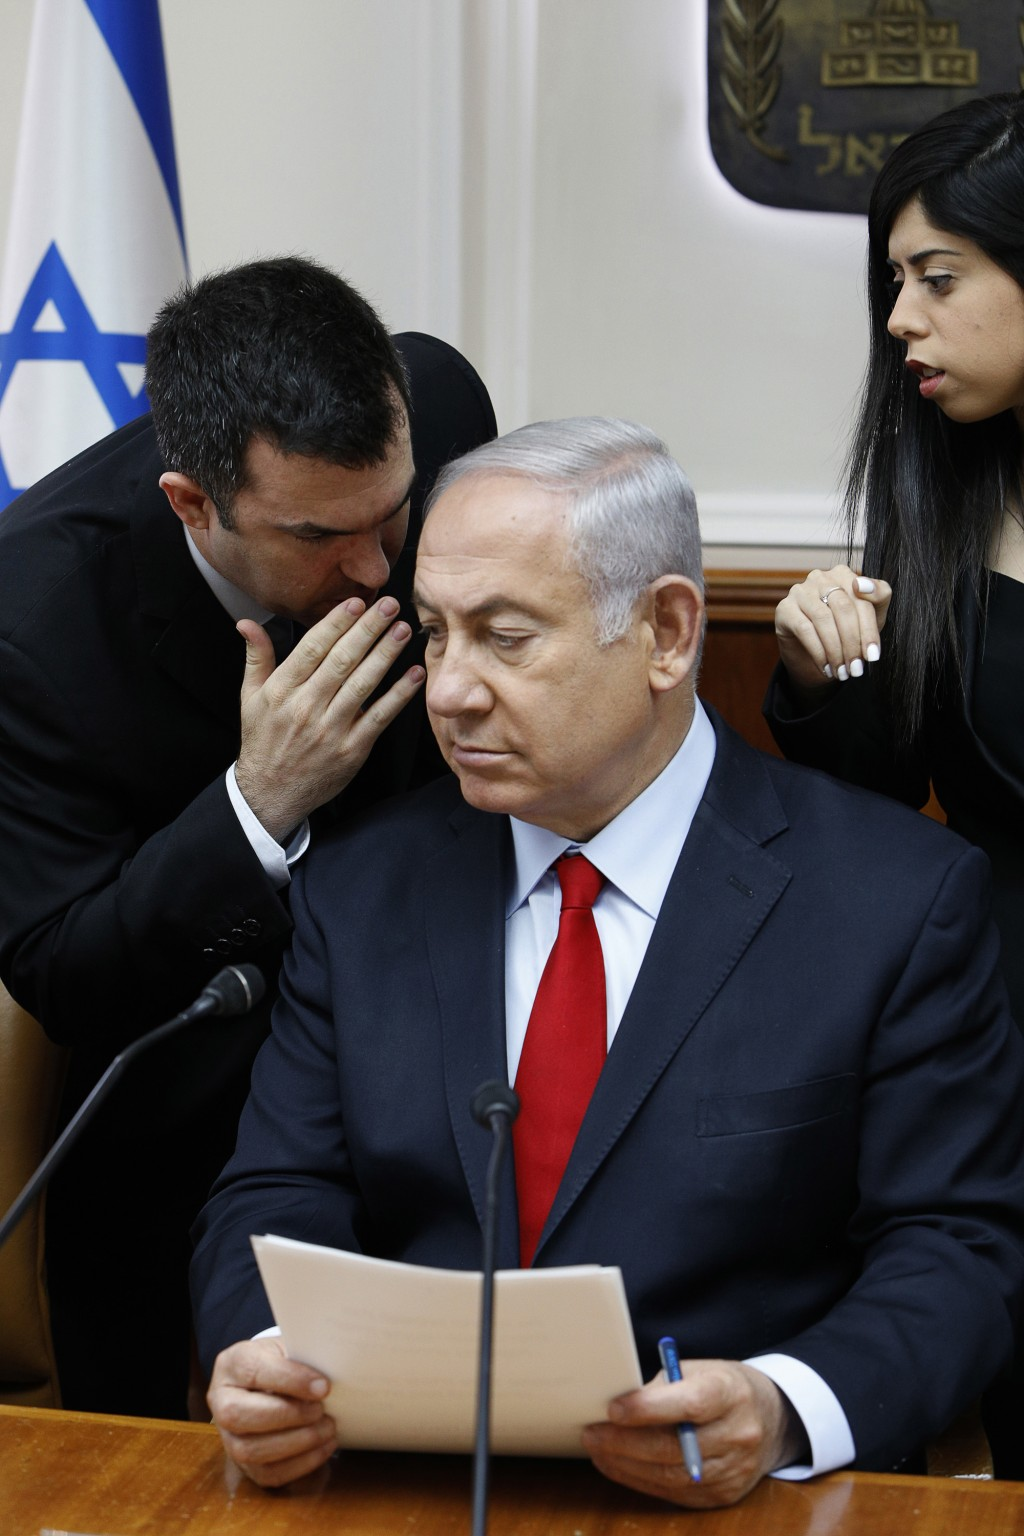 FILE - In this July 23, 2018 file photo, Israeli Prime Minister Benjamin Netanyahu listens to his spokesman David Keyes as he opens the weekly cabinet